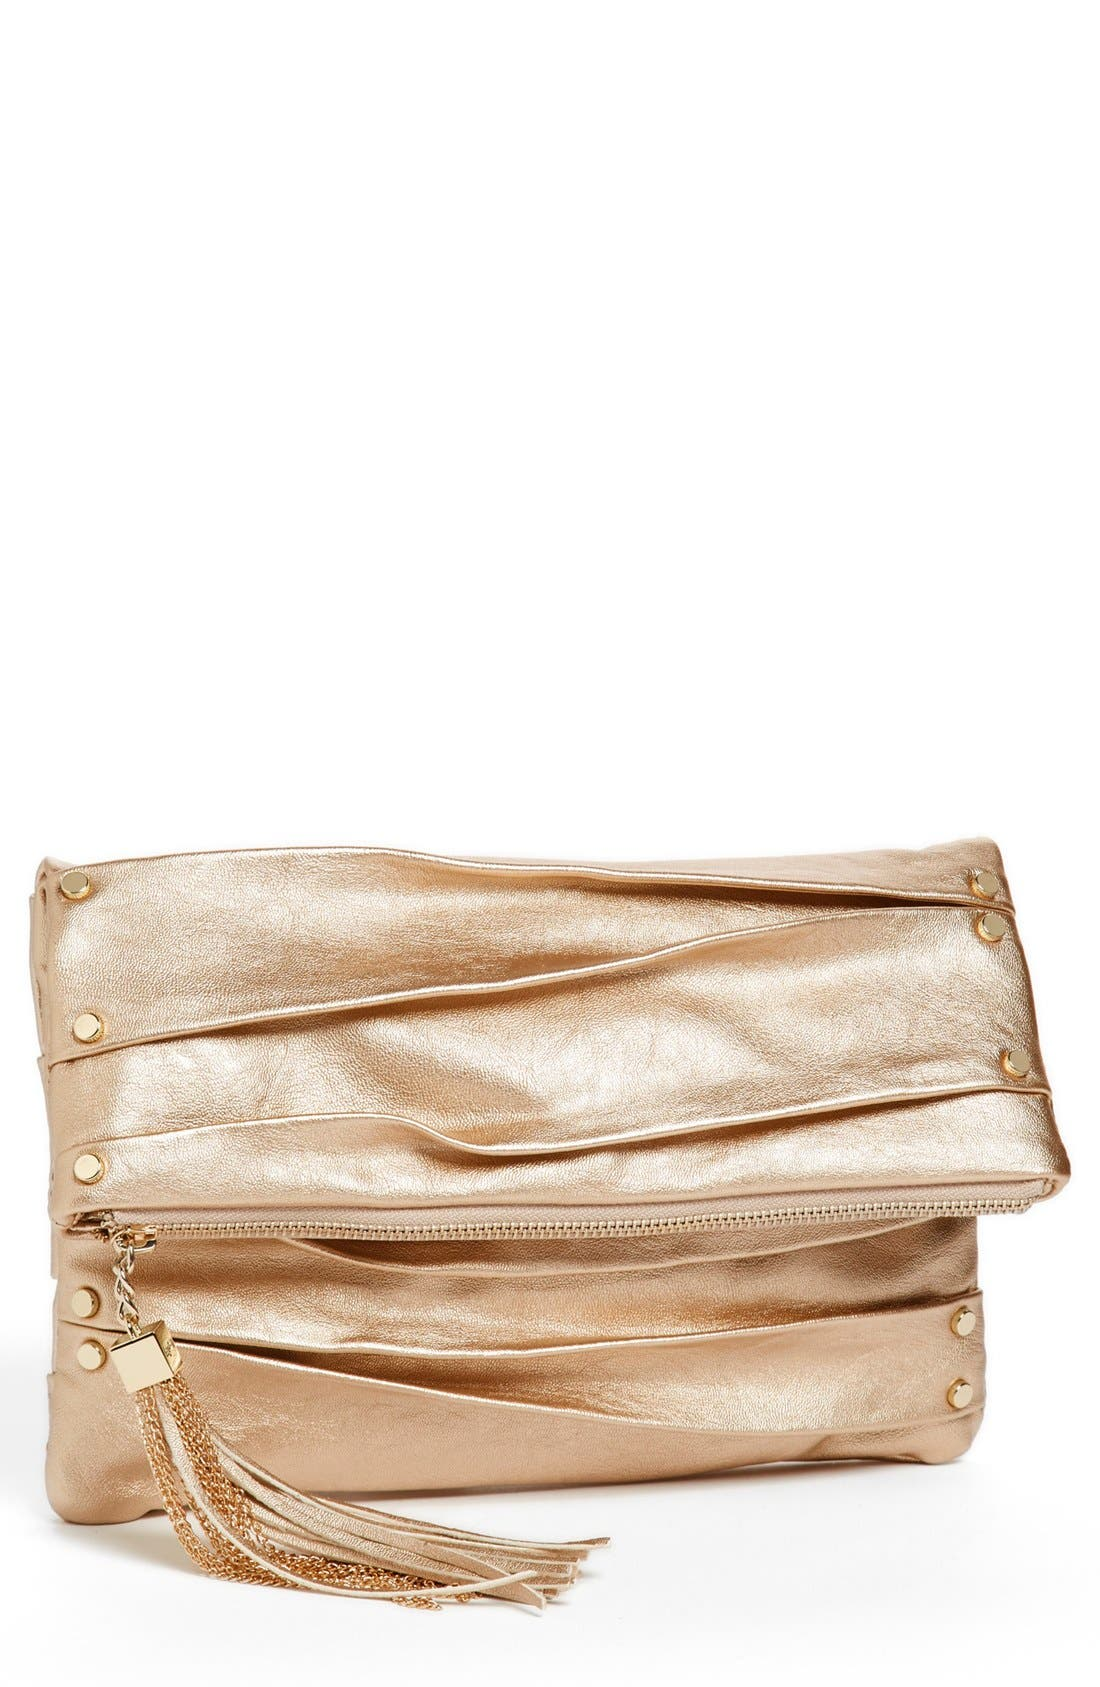 Alternate Image 1 Selected - Izzy & Ali 'Sophie' Foldover Clutch